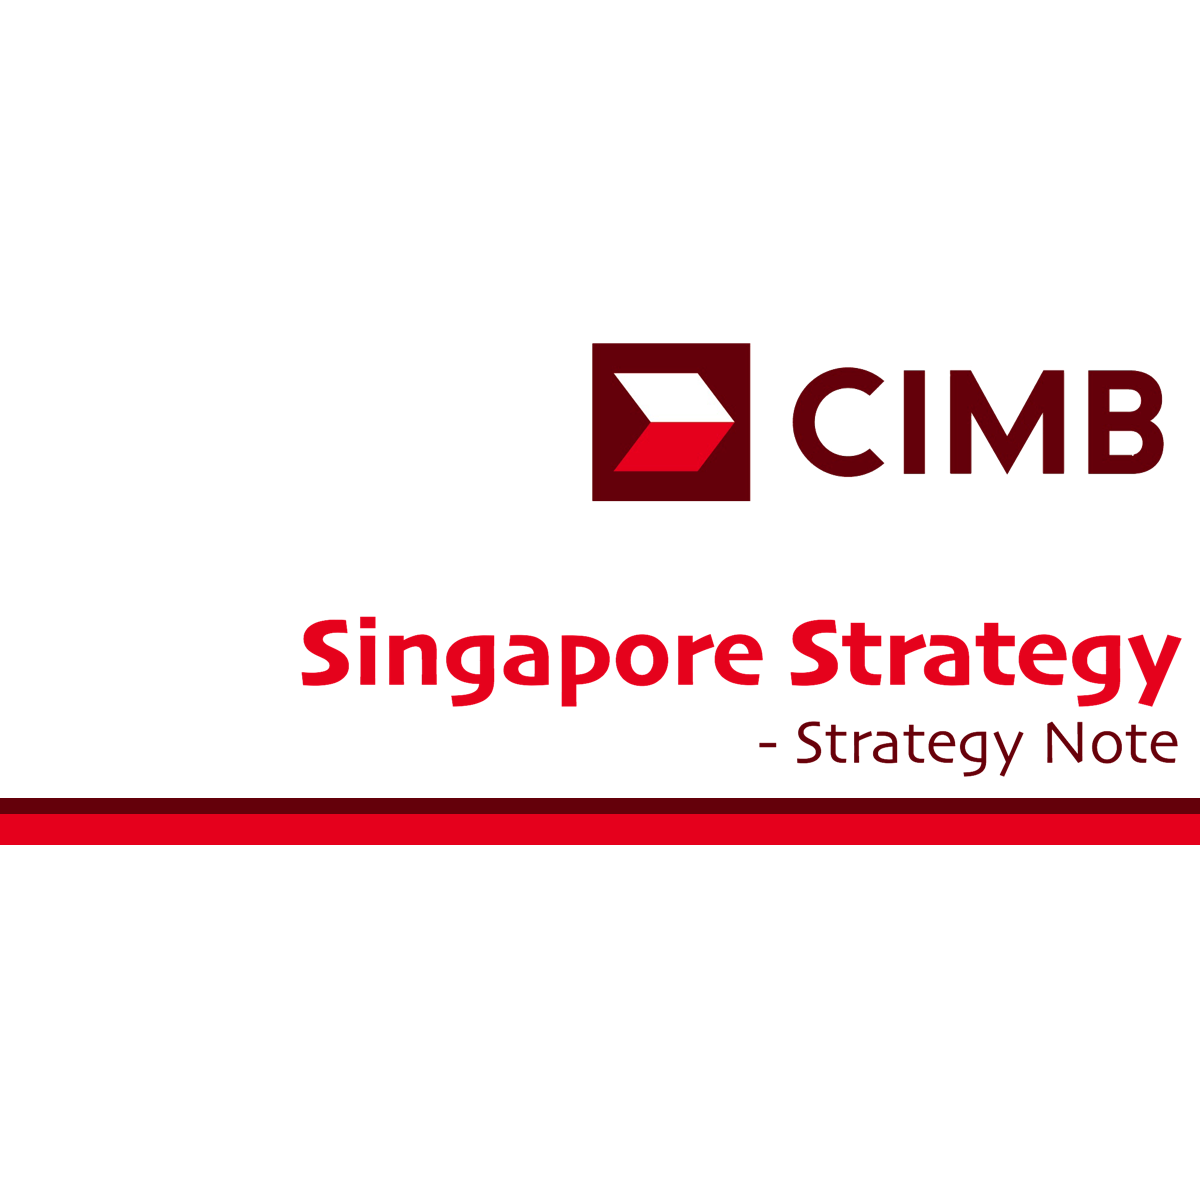 Singapore Strategy - CIMB Research 2018-02-07: Prepare With A Shopping List